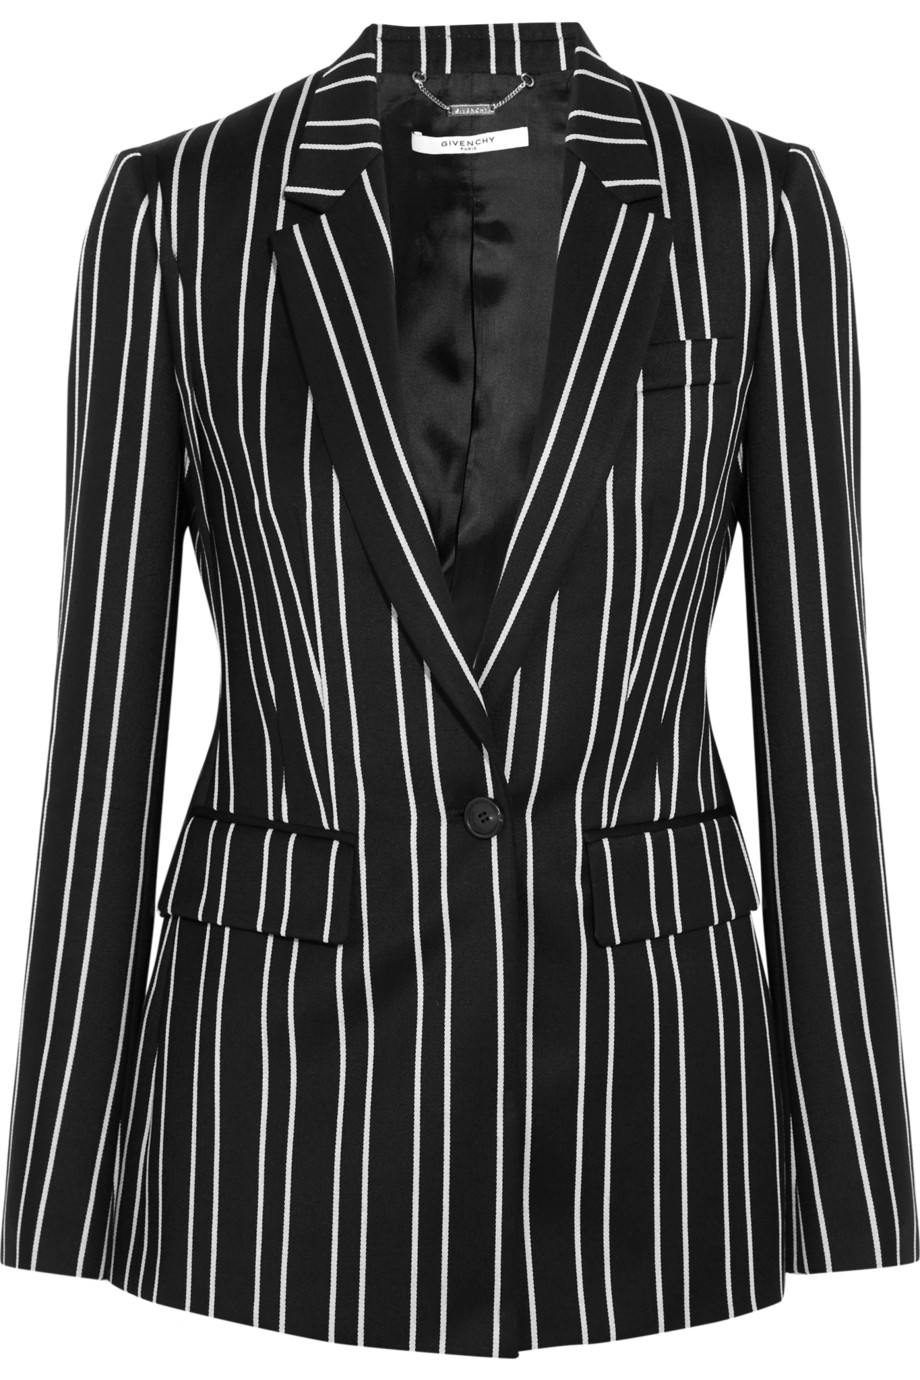 Couture Carrie Chic Stripes